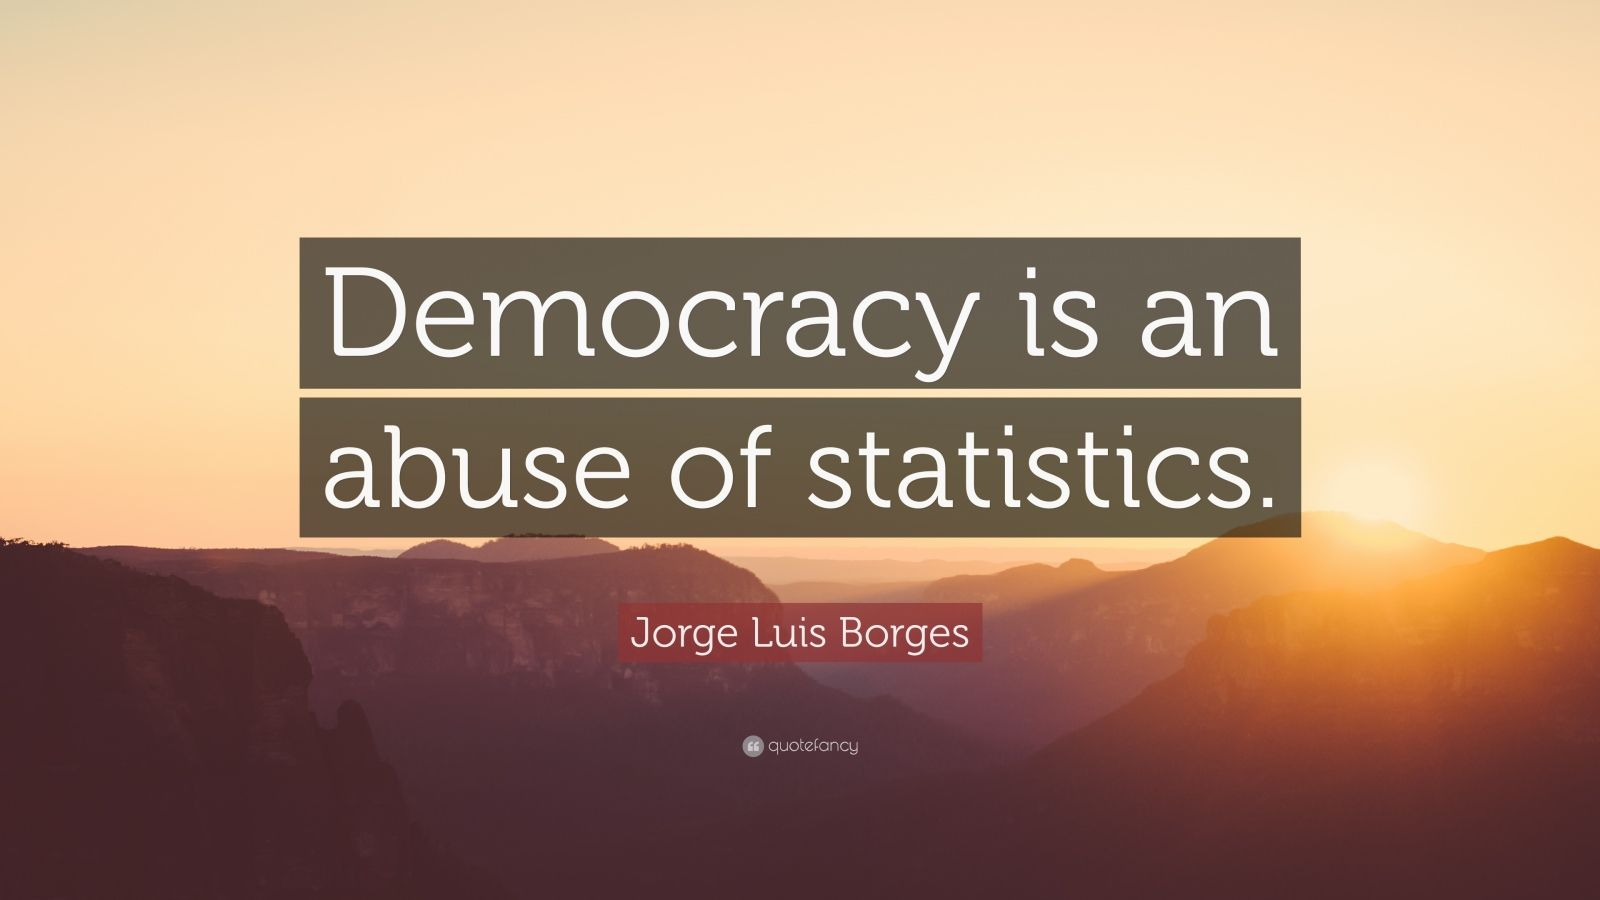 """Jorge Luis Borges Quote: """"Democracy is an abuse of statistics."""""""